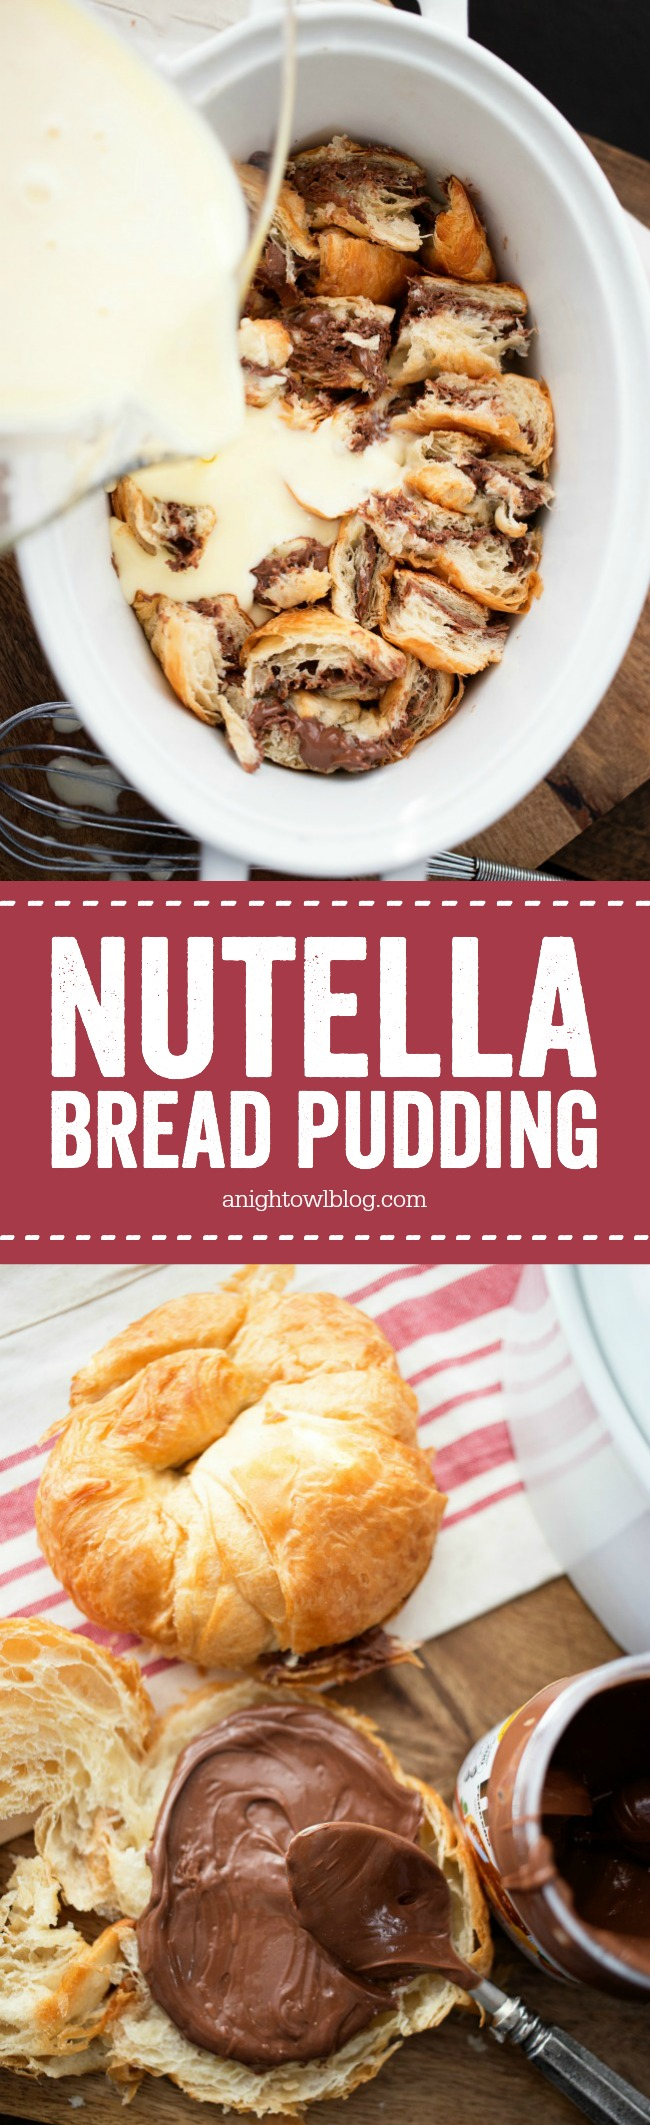 This Nutella Bread Pudding is simple and delicious, perfect for ...